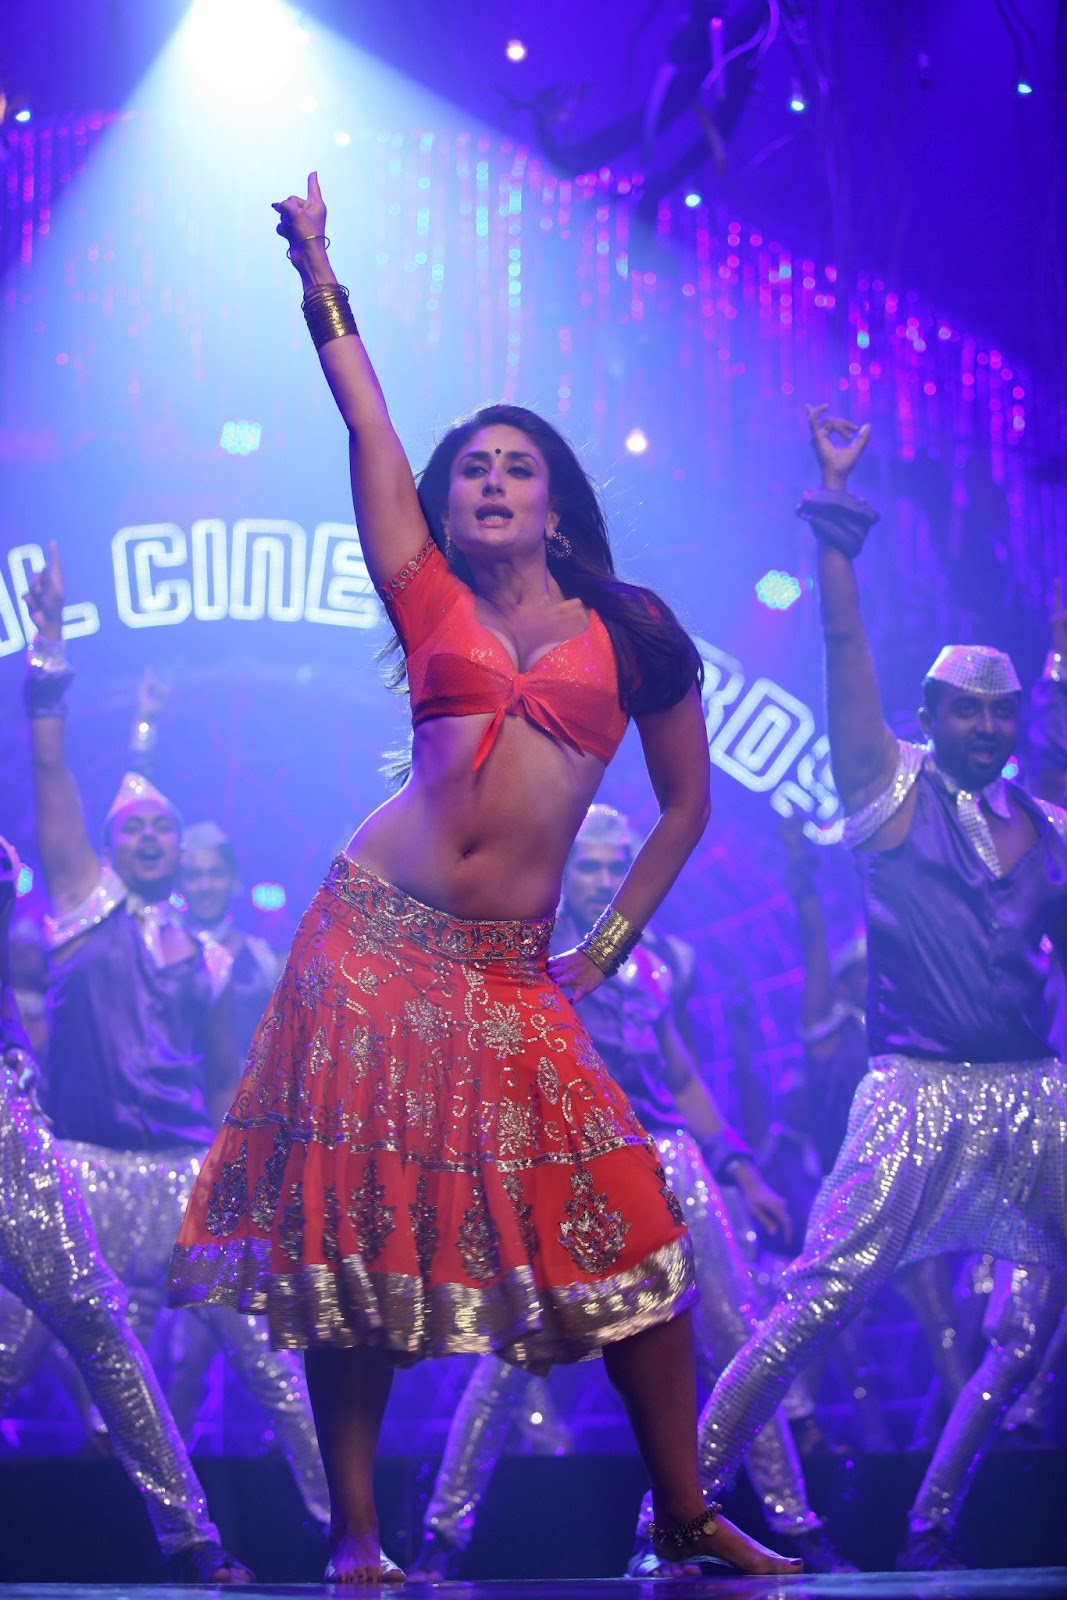 High Quality Bollywood Celebrity Pictures: Kareena Kapoor ...